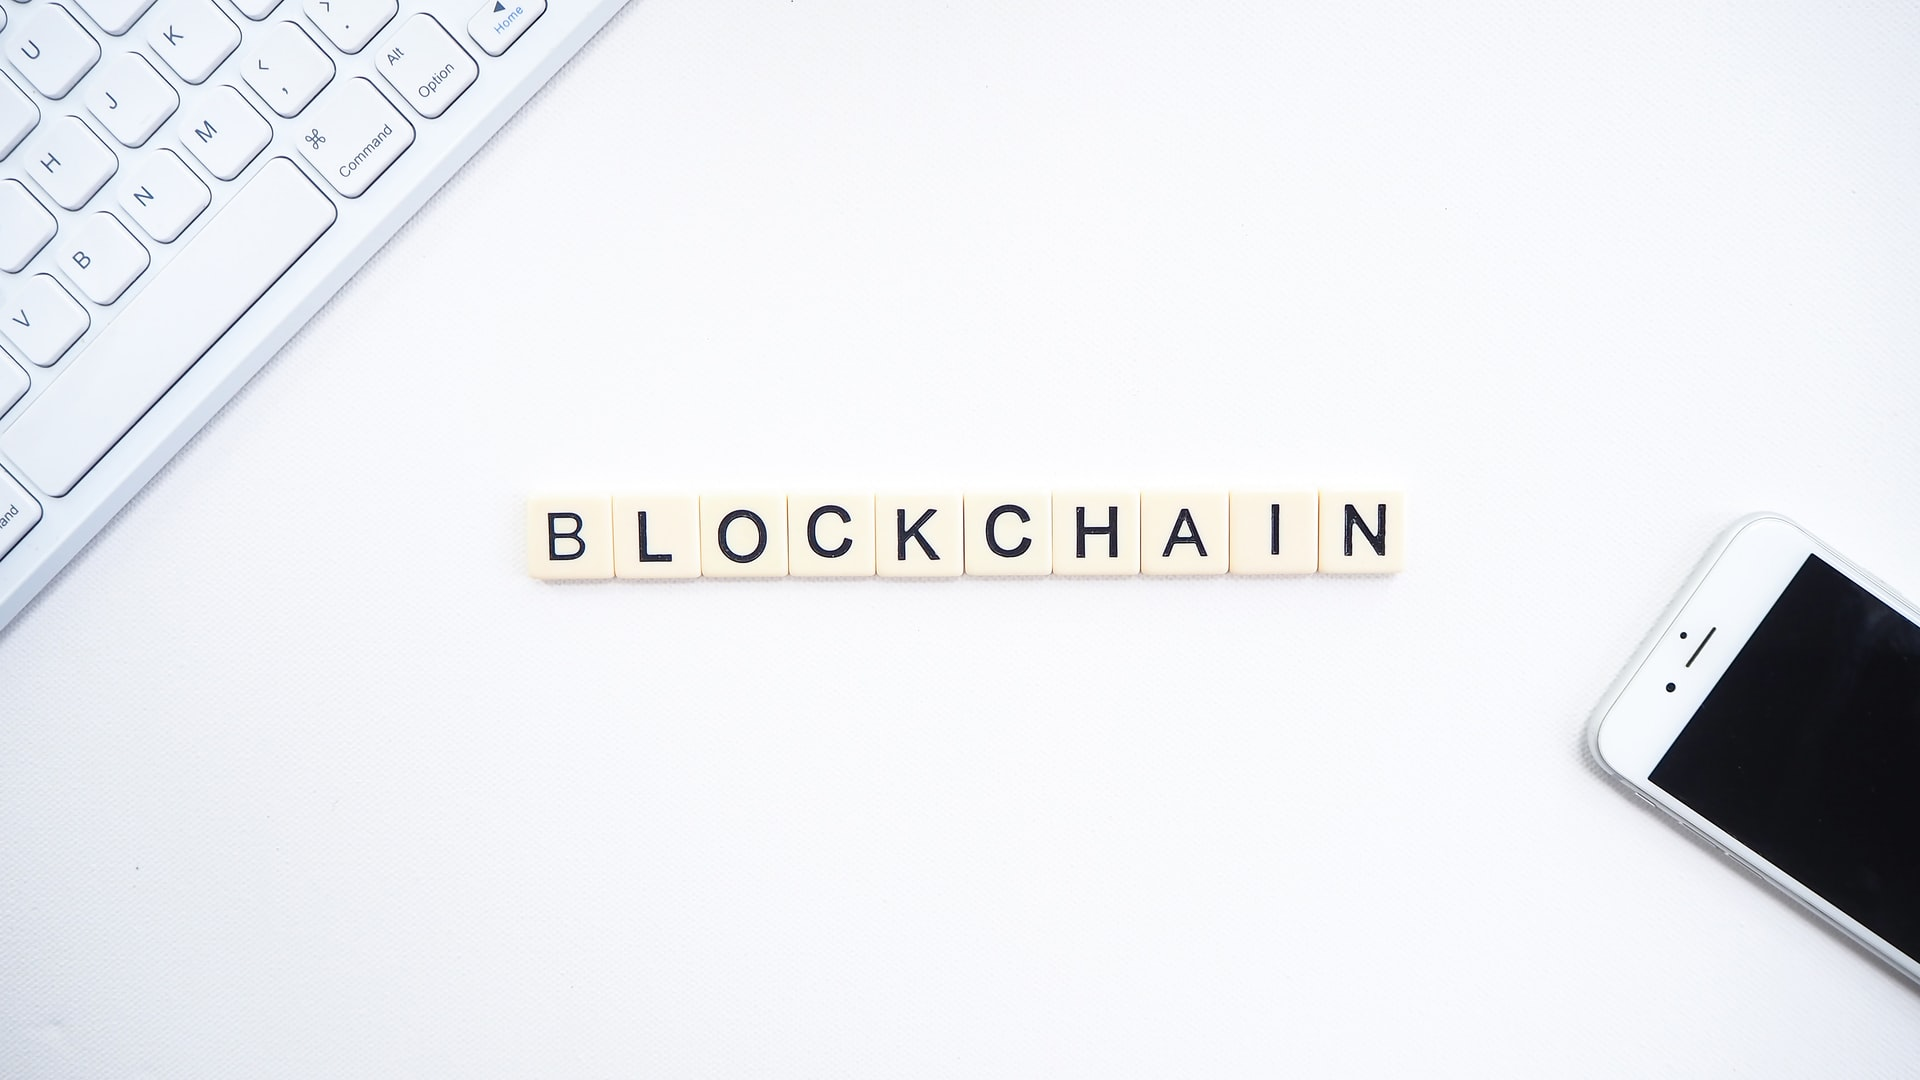 A Guide On Quorum Blockchain And Their Use Cases